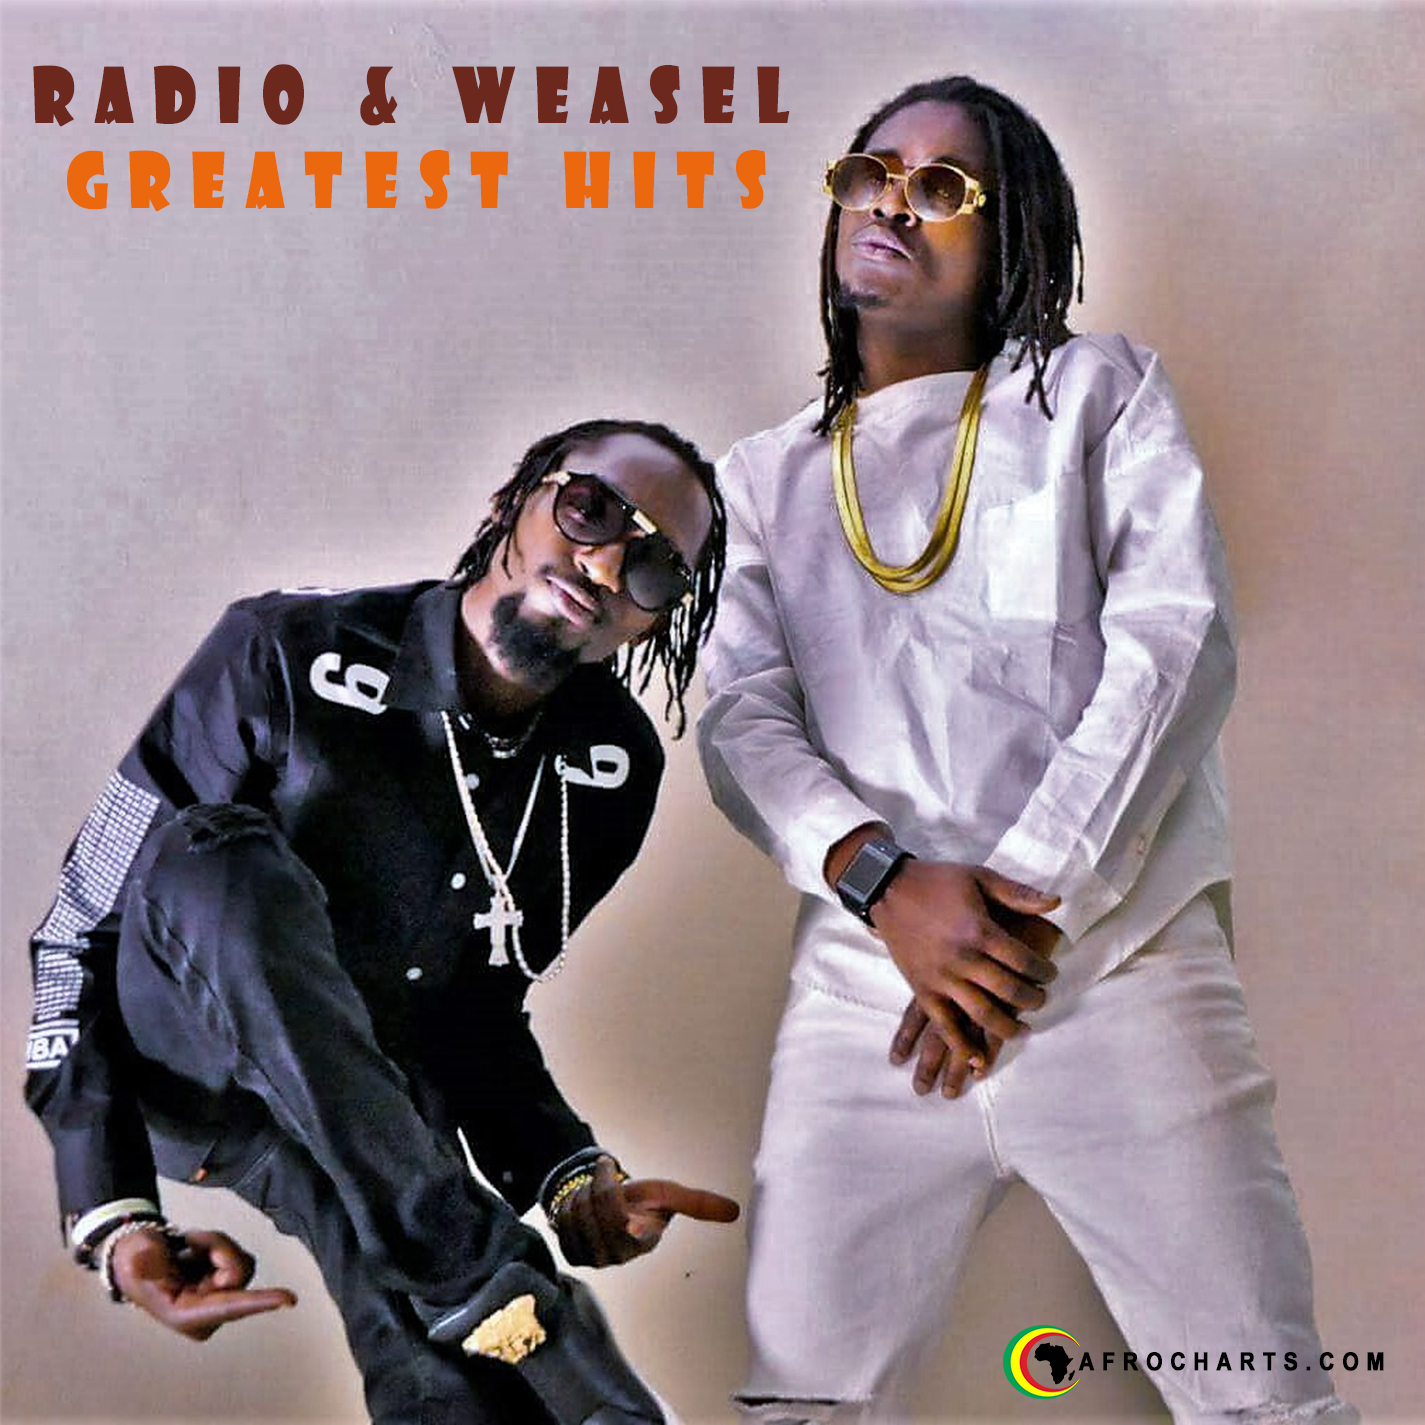 Radio & Weasel Greatest Hits